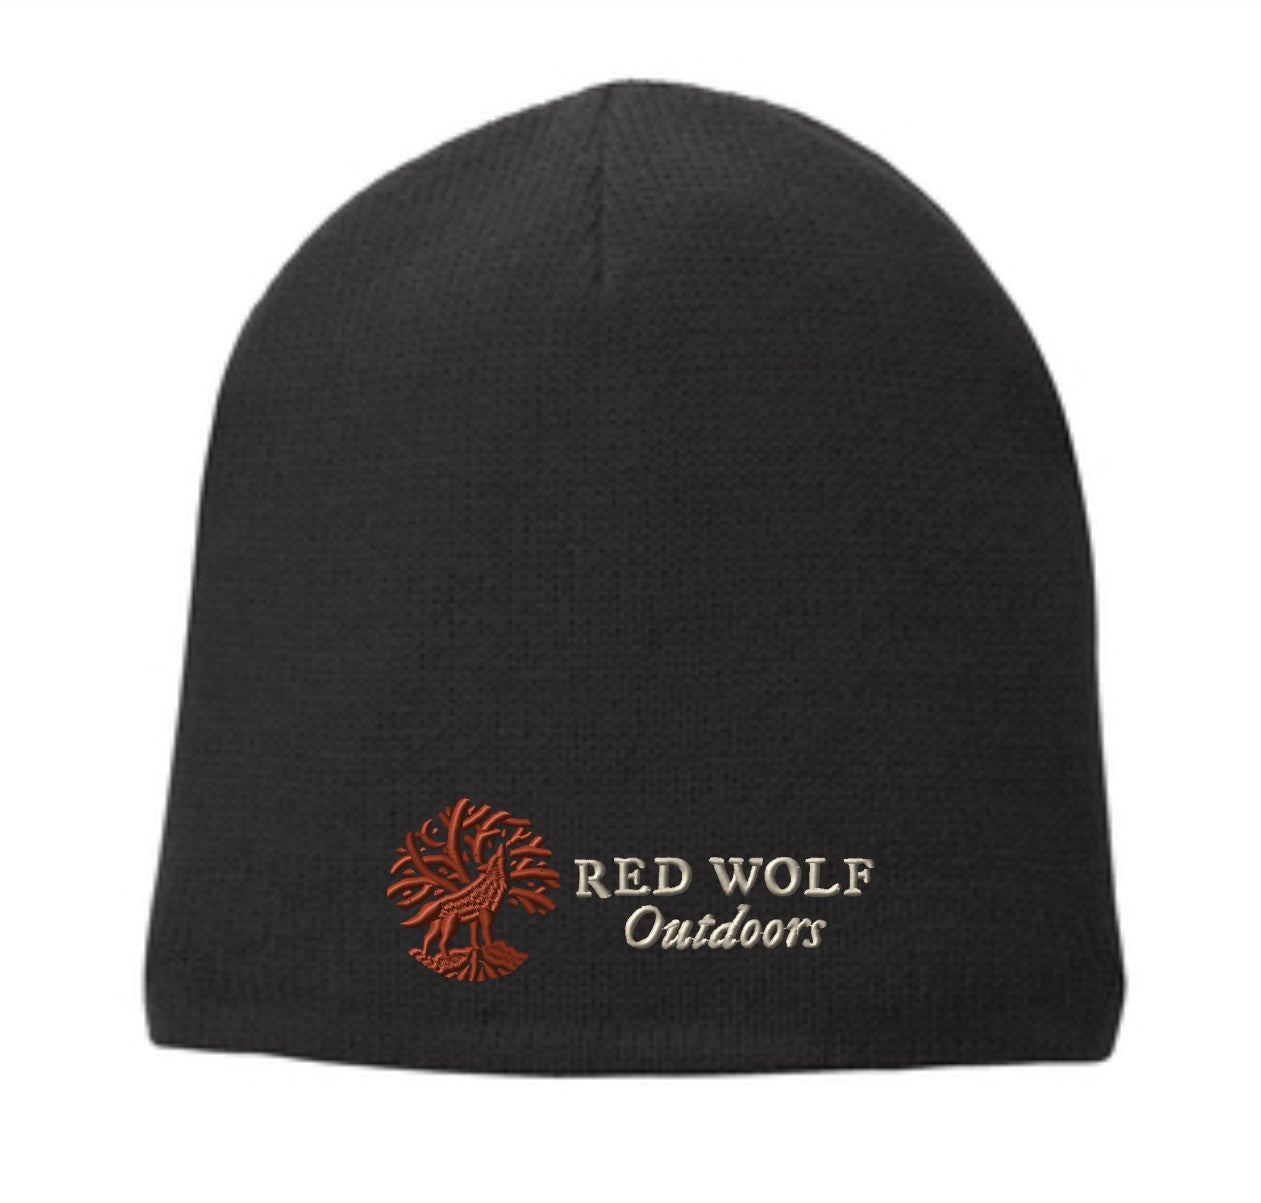 Red Wolf Outdoors Signature Beanie Hat